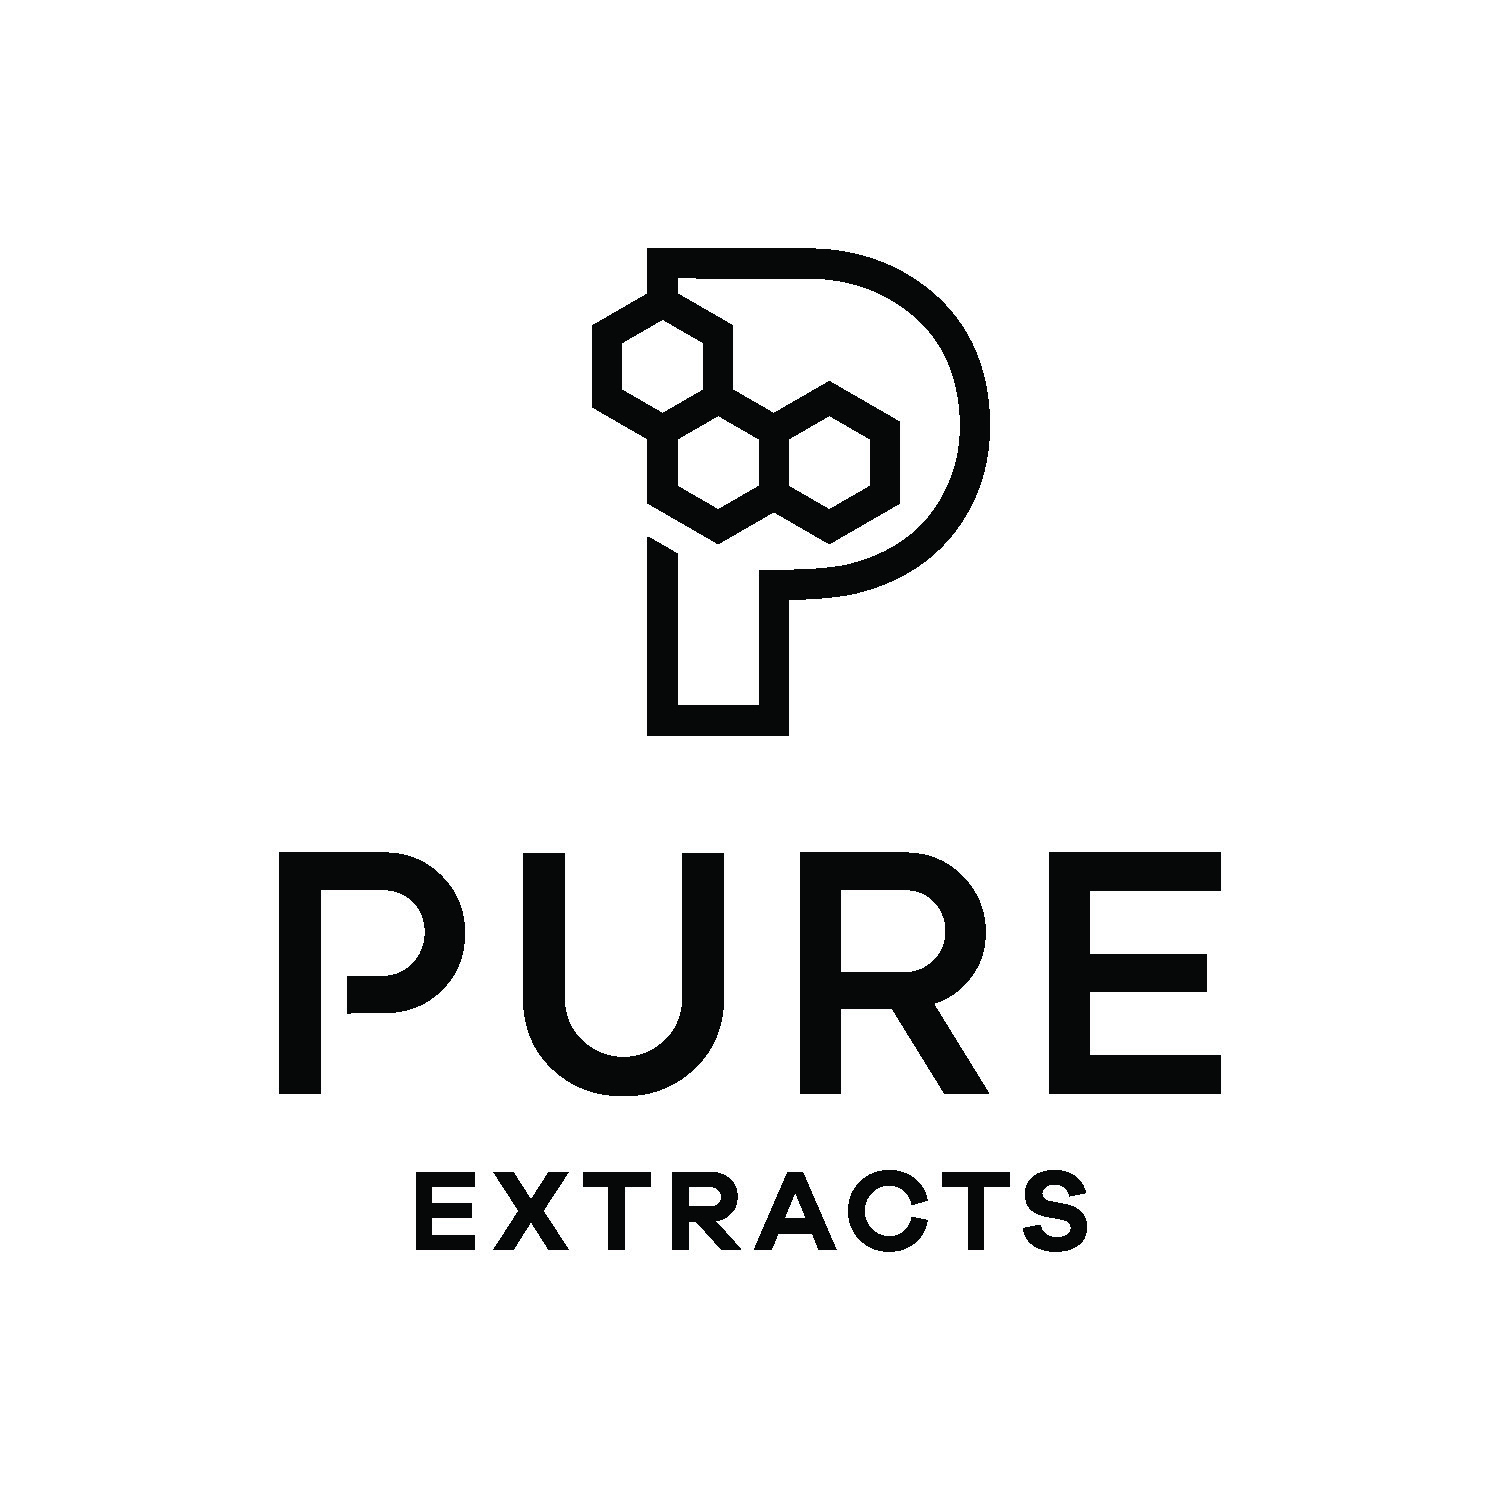 Pure Extracts Announces Submission for Class 1 Natural Product Number (NPN)